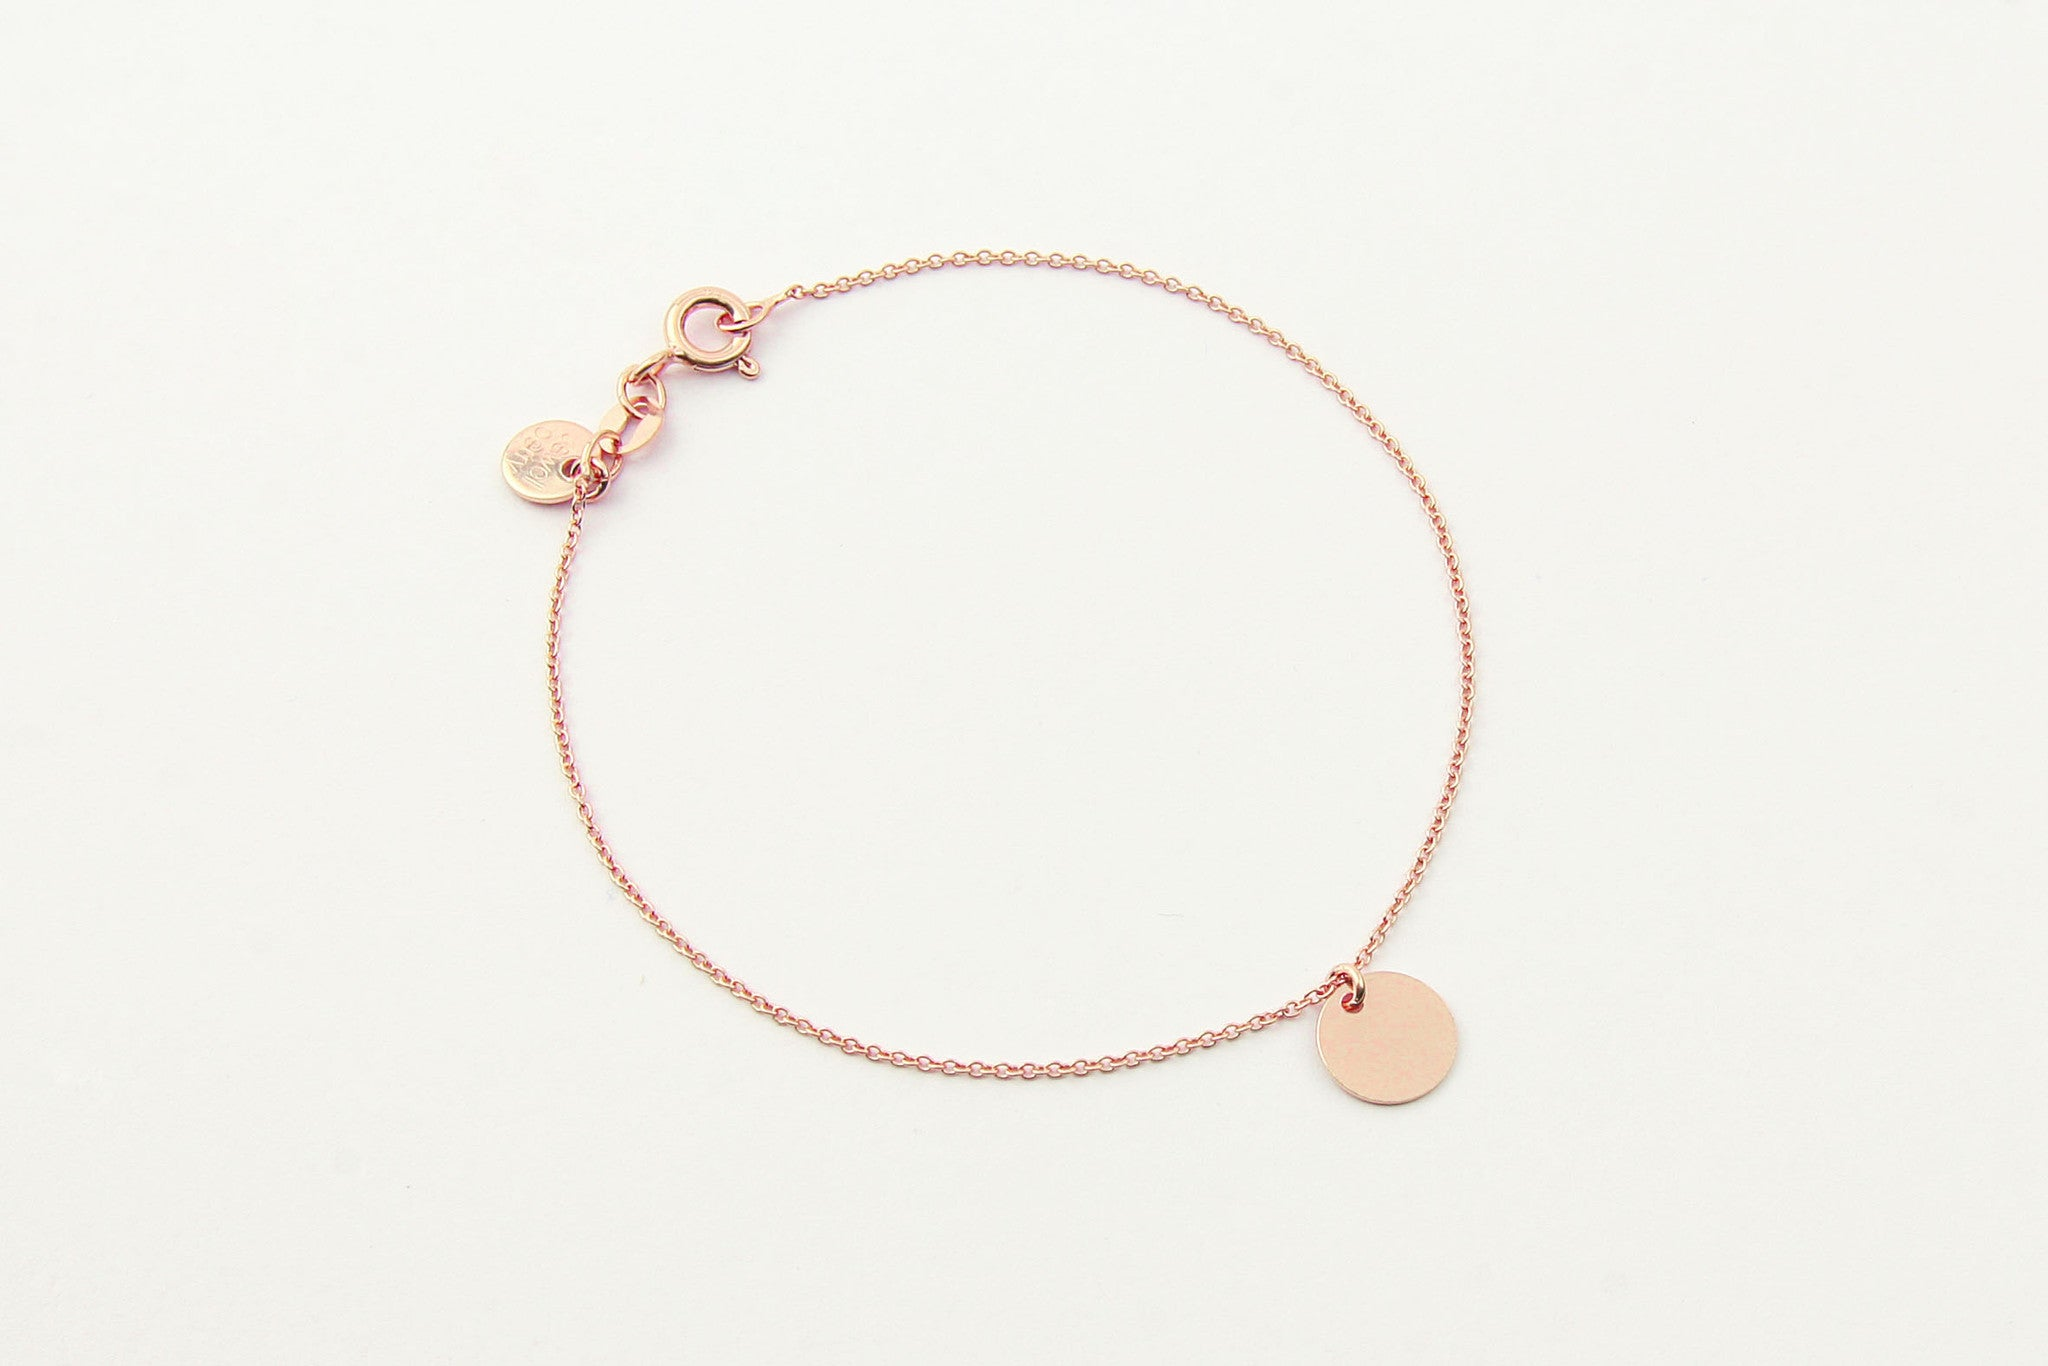 jewelberry armband bracelet small disc rose gold plated sterling silver fine jewelry handmade with love fairtrade anchor chain